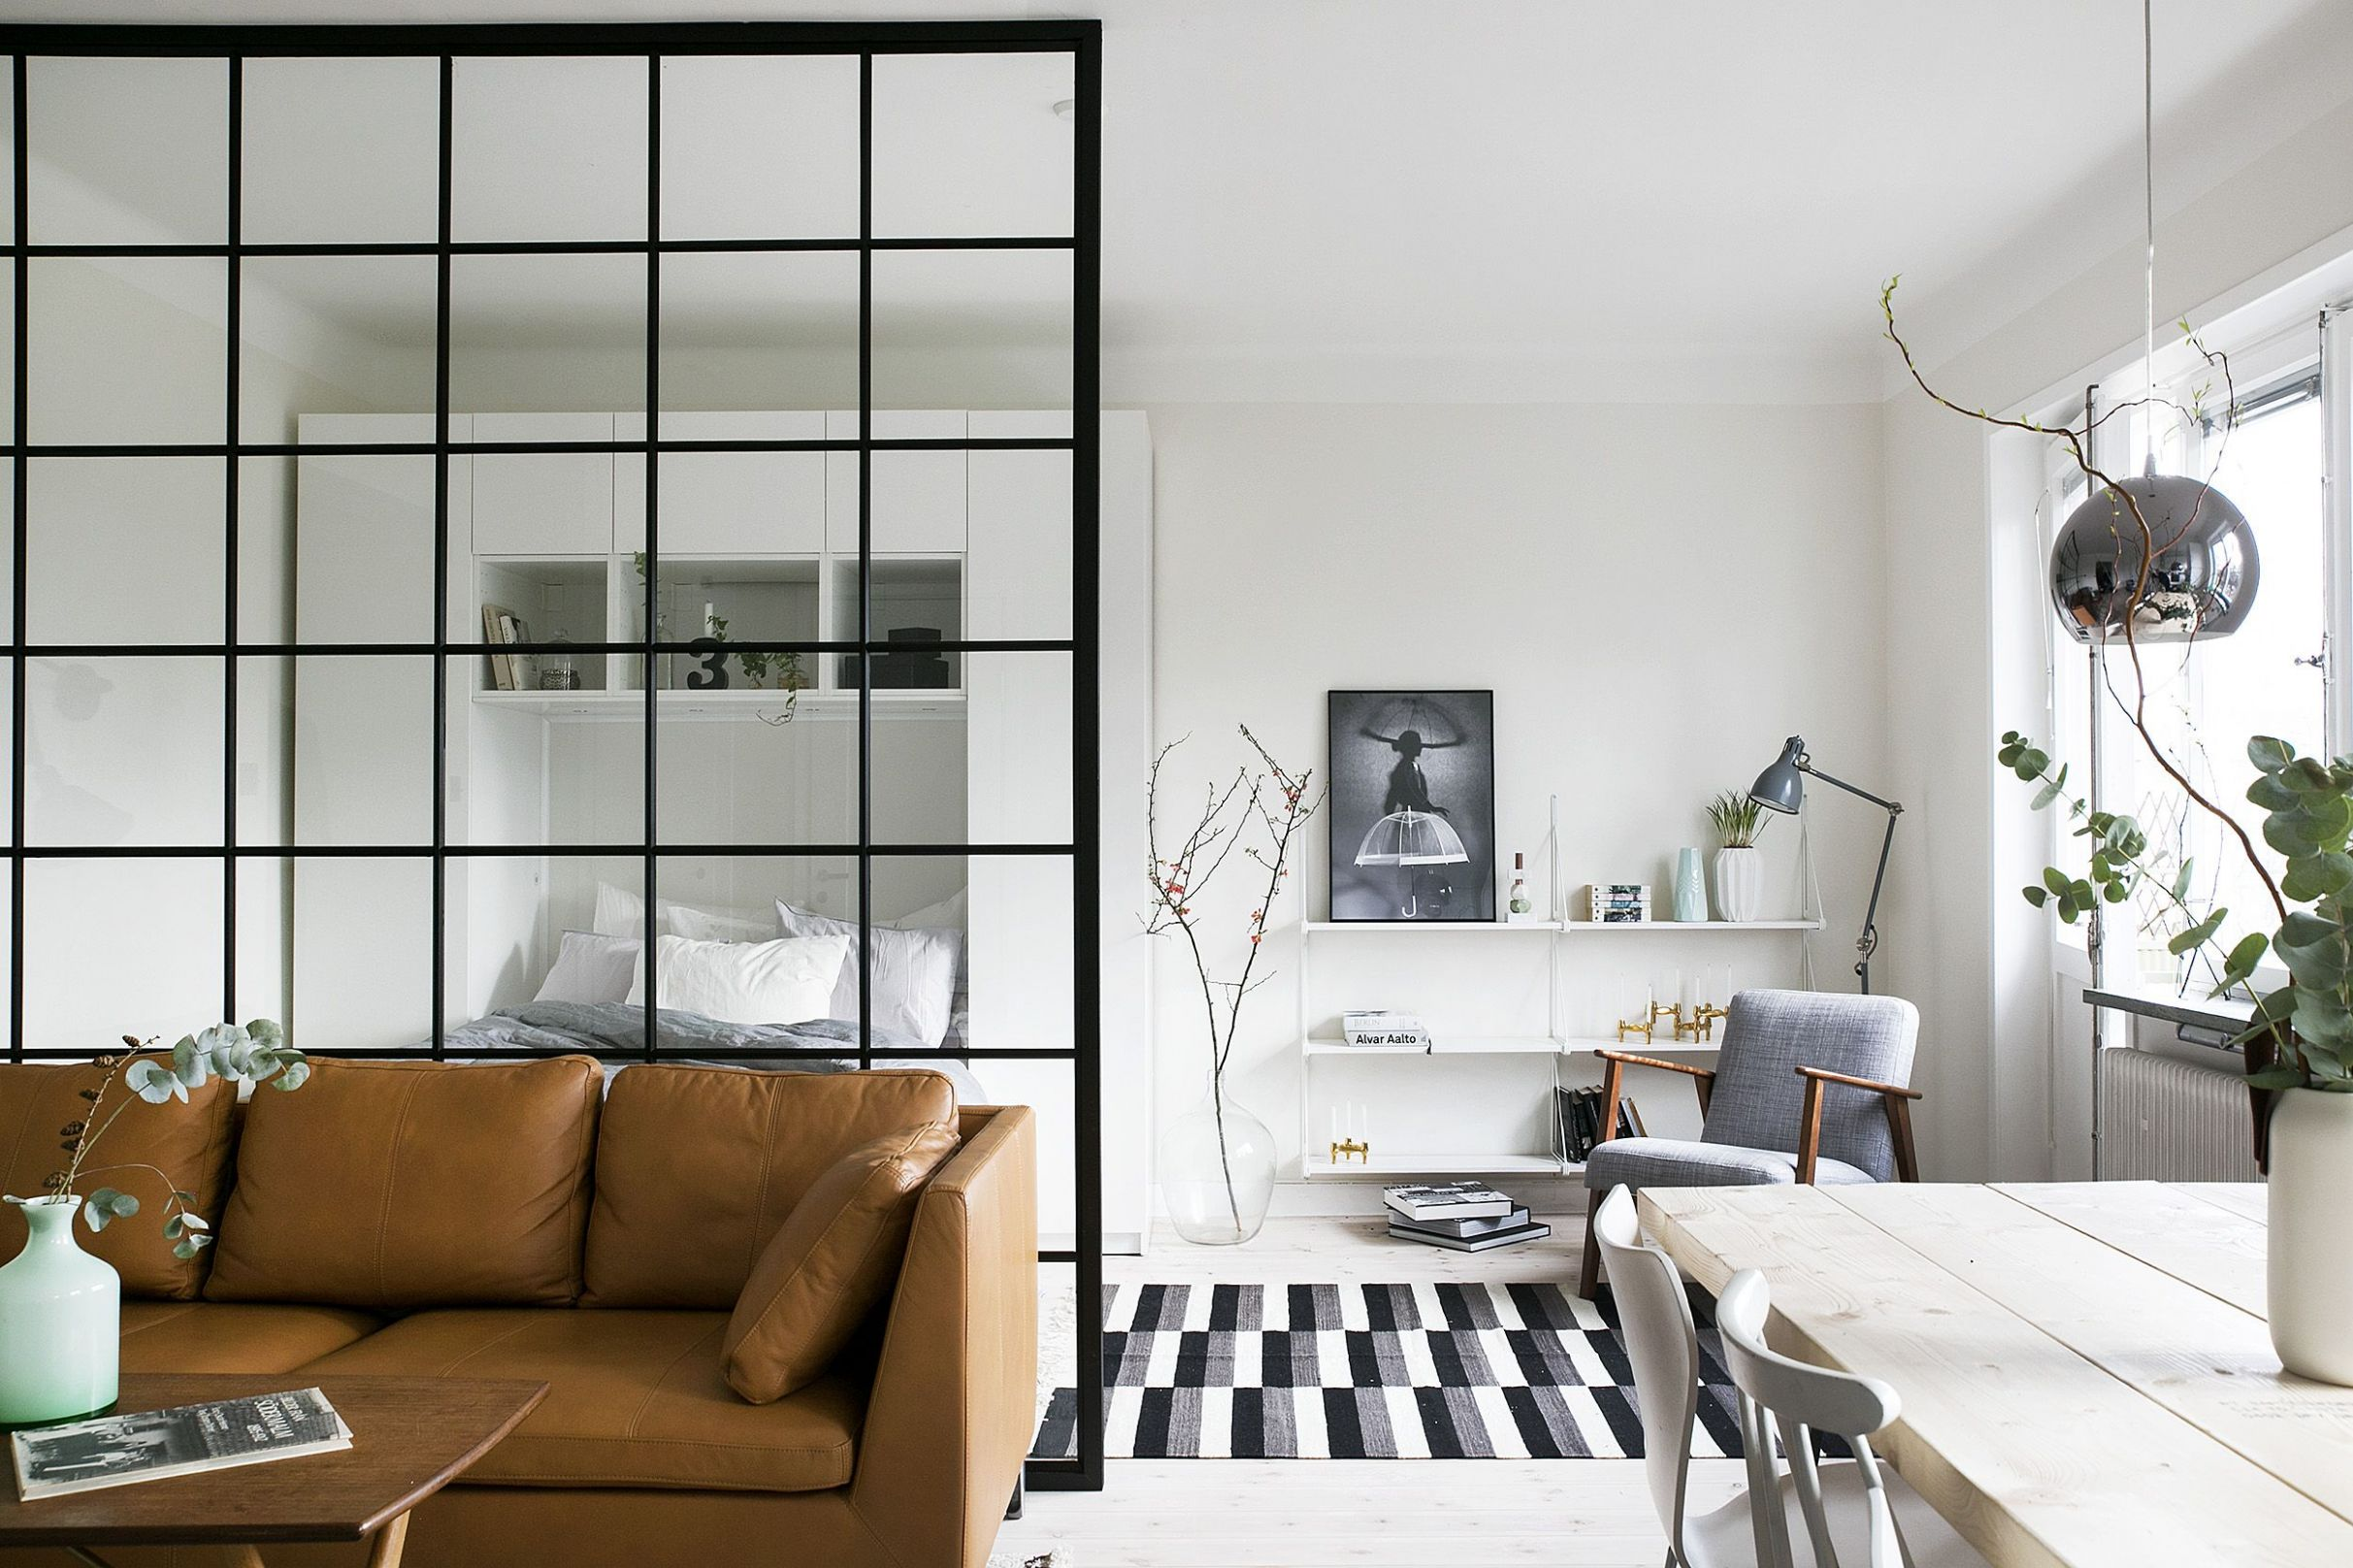 11 Small House Interior Design Ideas - How to Decorate a Small Space - apartment design ideas